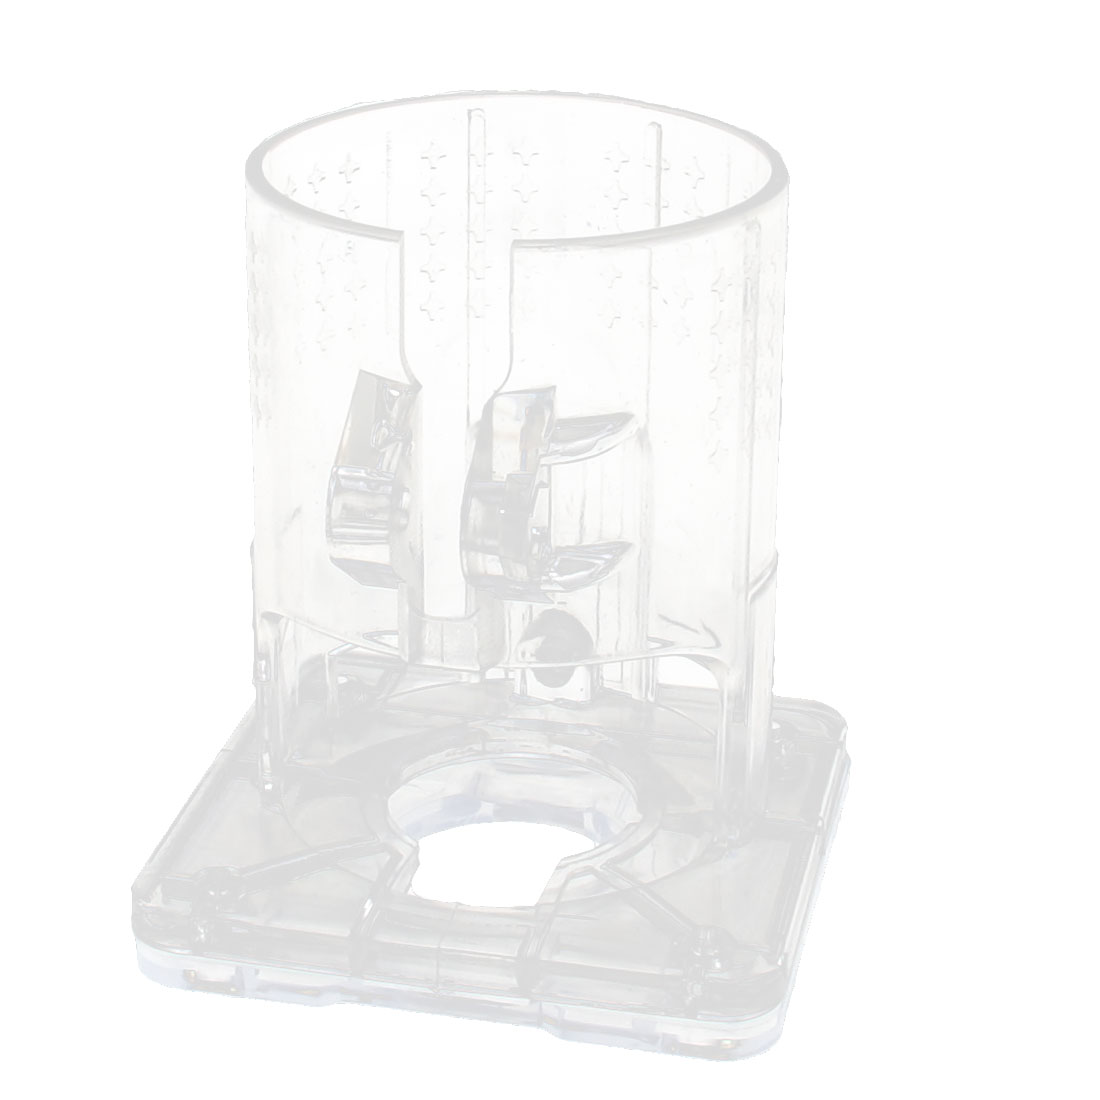 7cm Cylinder Diameter Clear Plastic Base Assembly for Makita 3703 Trimmer